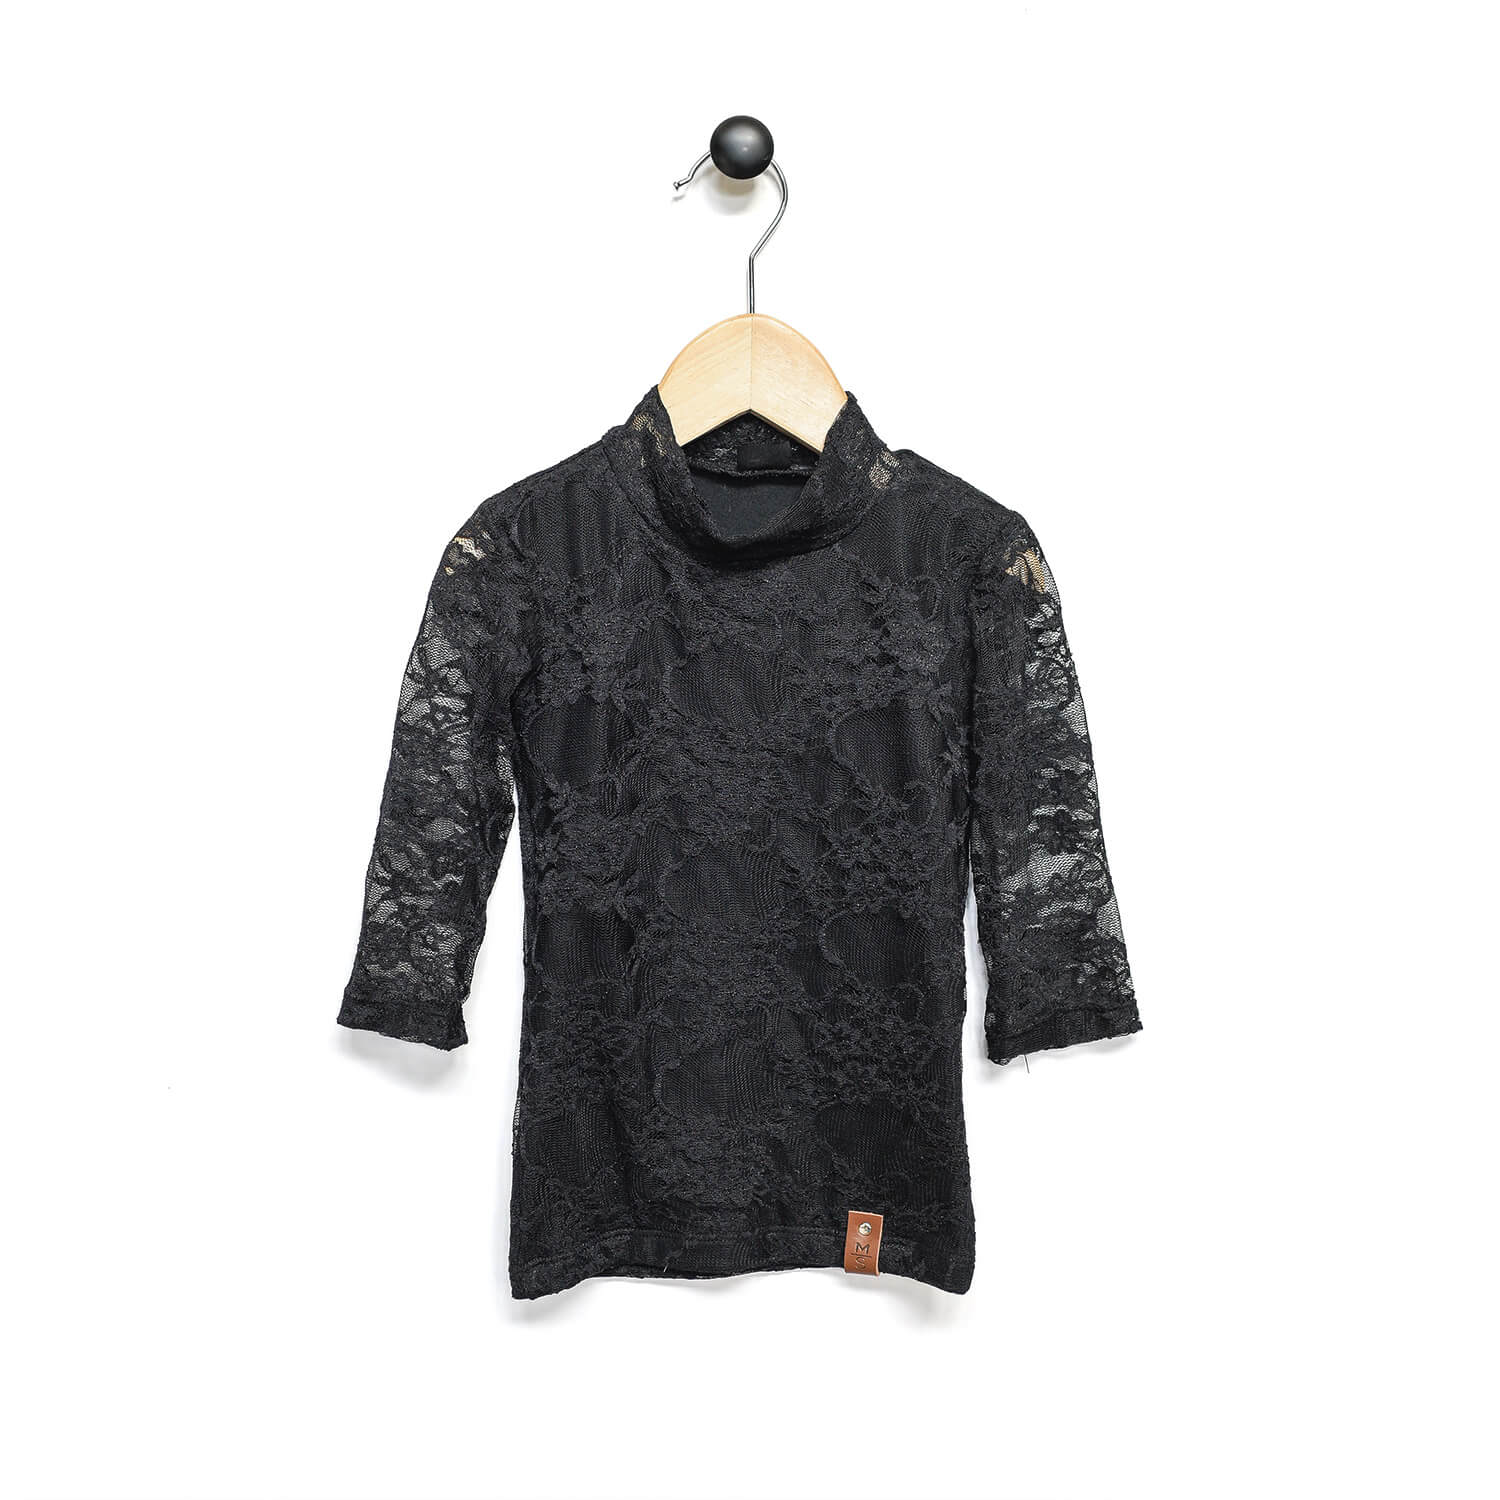 Marin Mock Tee  - 3/4 Sleeve - Black Lace